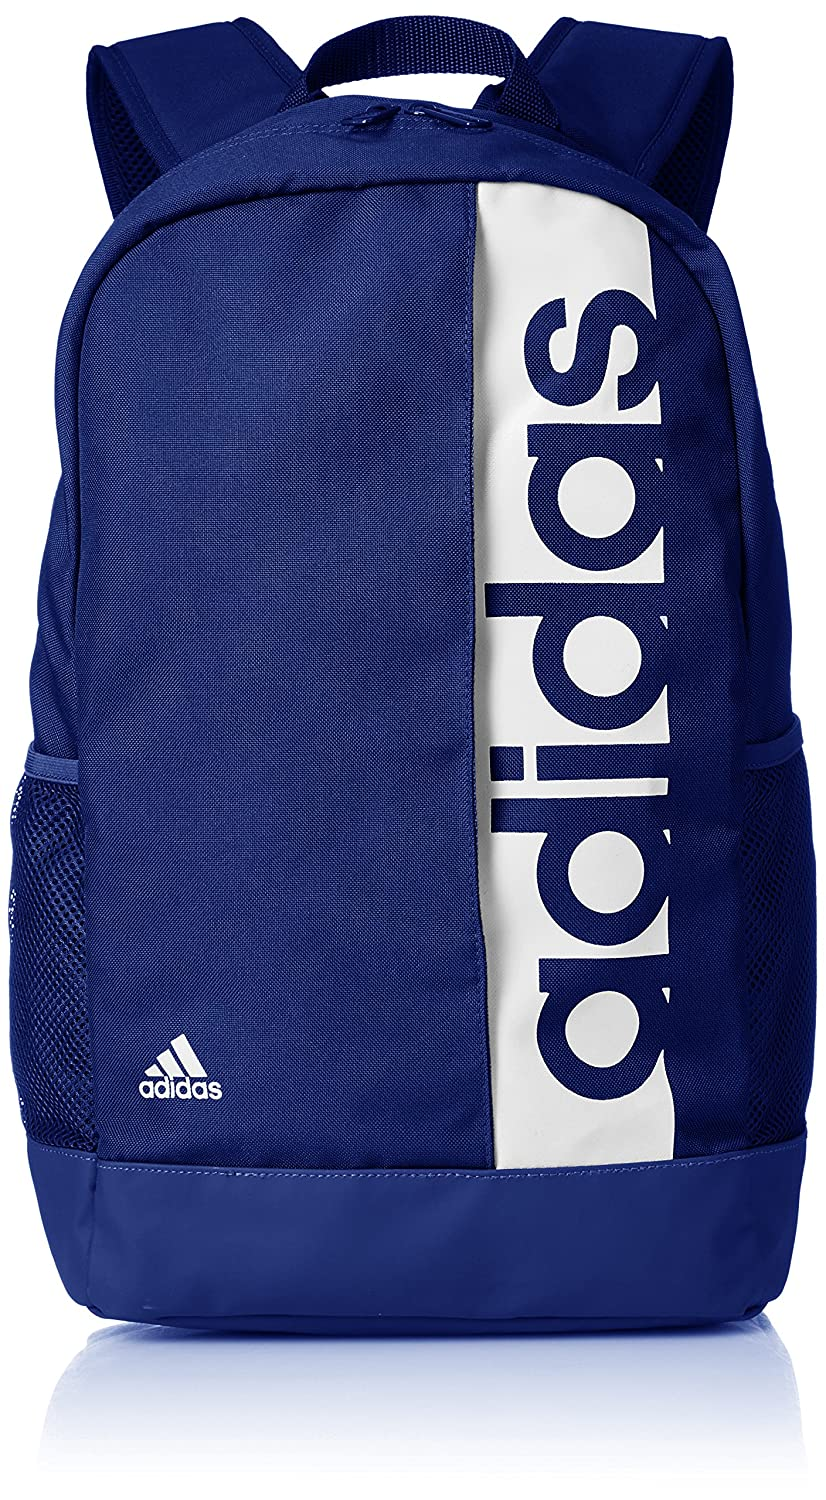 679a609c41ec adidas Linear Performance Backpack  Amazon.co.uk  Sports   Outdoors